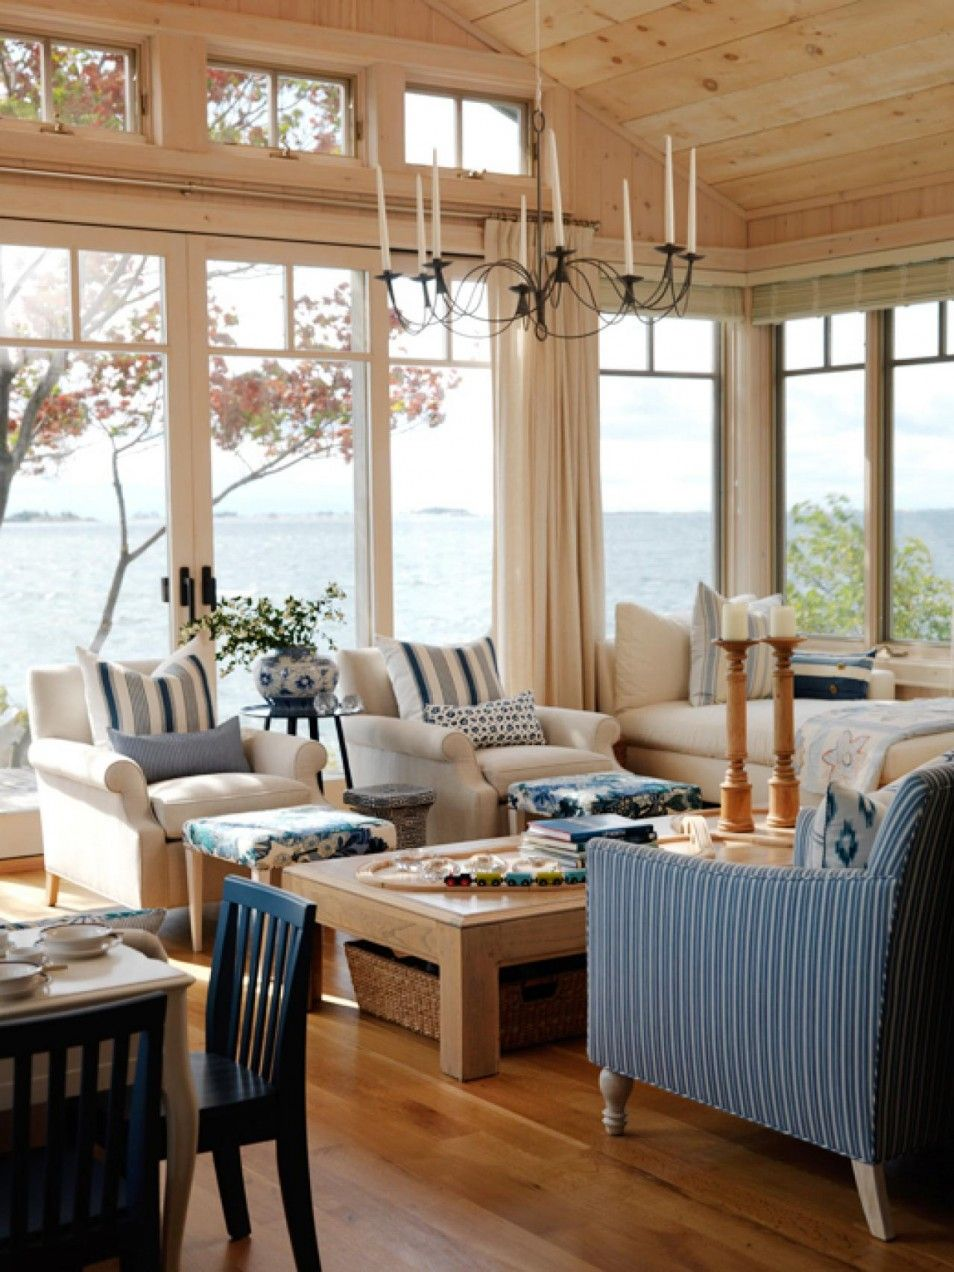 Beach House Living Rooms With Modern Furniture Beautiful Beach Decor Living Room Coastal Living Room Ideas Living Room And Dining Room Decorating Living Room Apartment Living Room Designs. Hgtv Living Room Design. Living Room Designs Ideas. | scocm.com